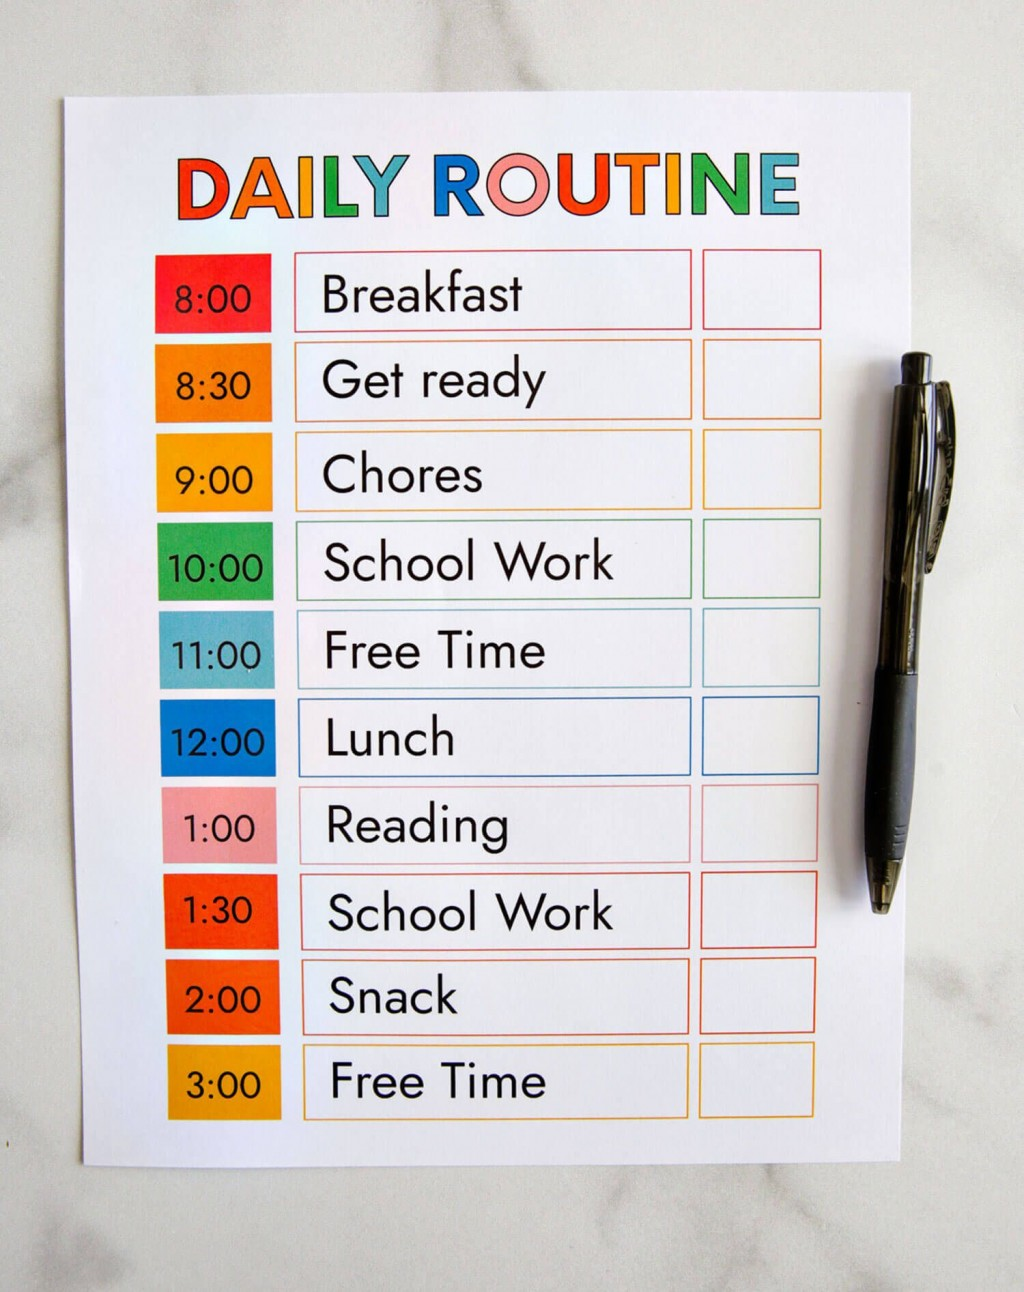 008 Shocking Daily Schedule Template Printable Image Large